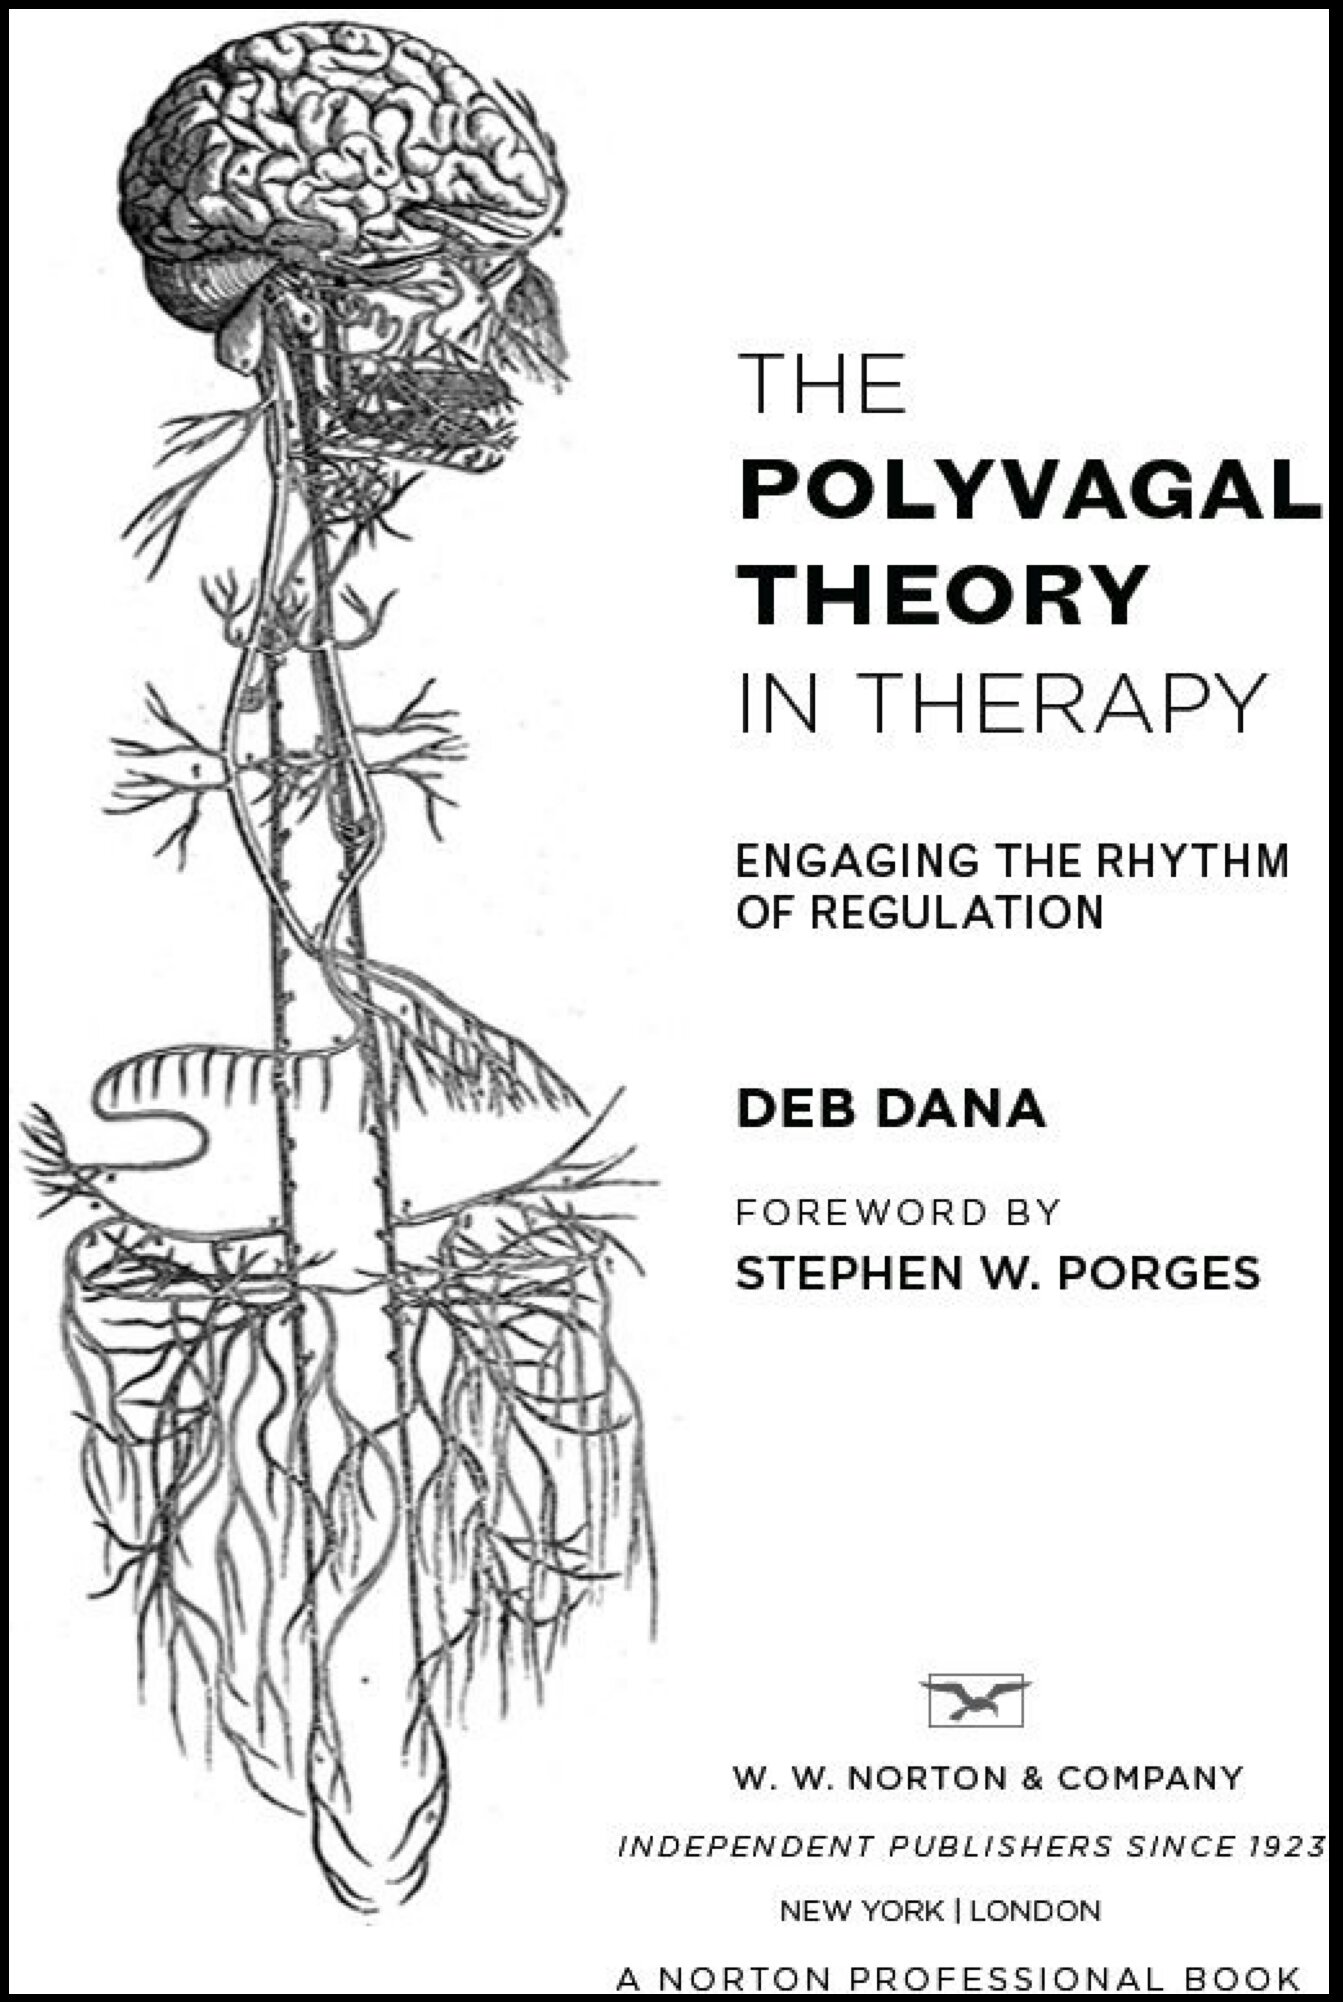 the polyvagal theory in therapy engaging the rhythm of regulation [ 1343 x 2002 Pixel ]